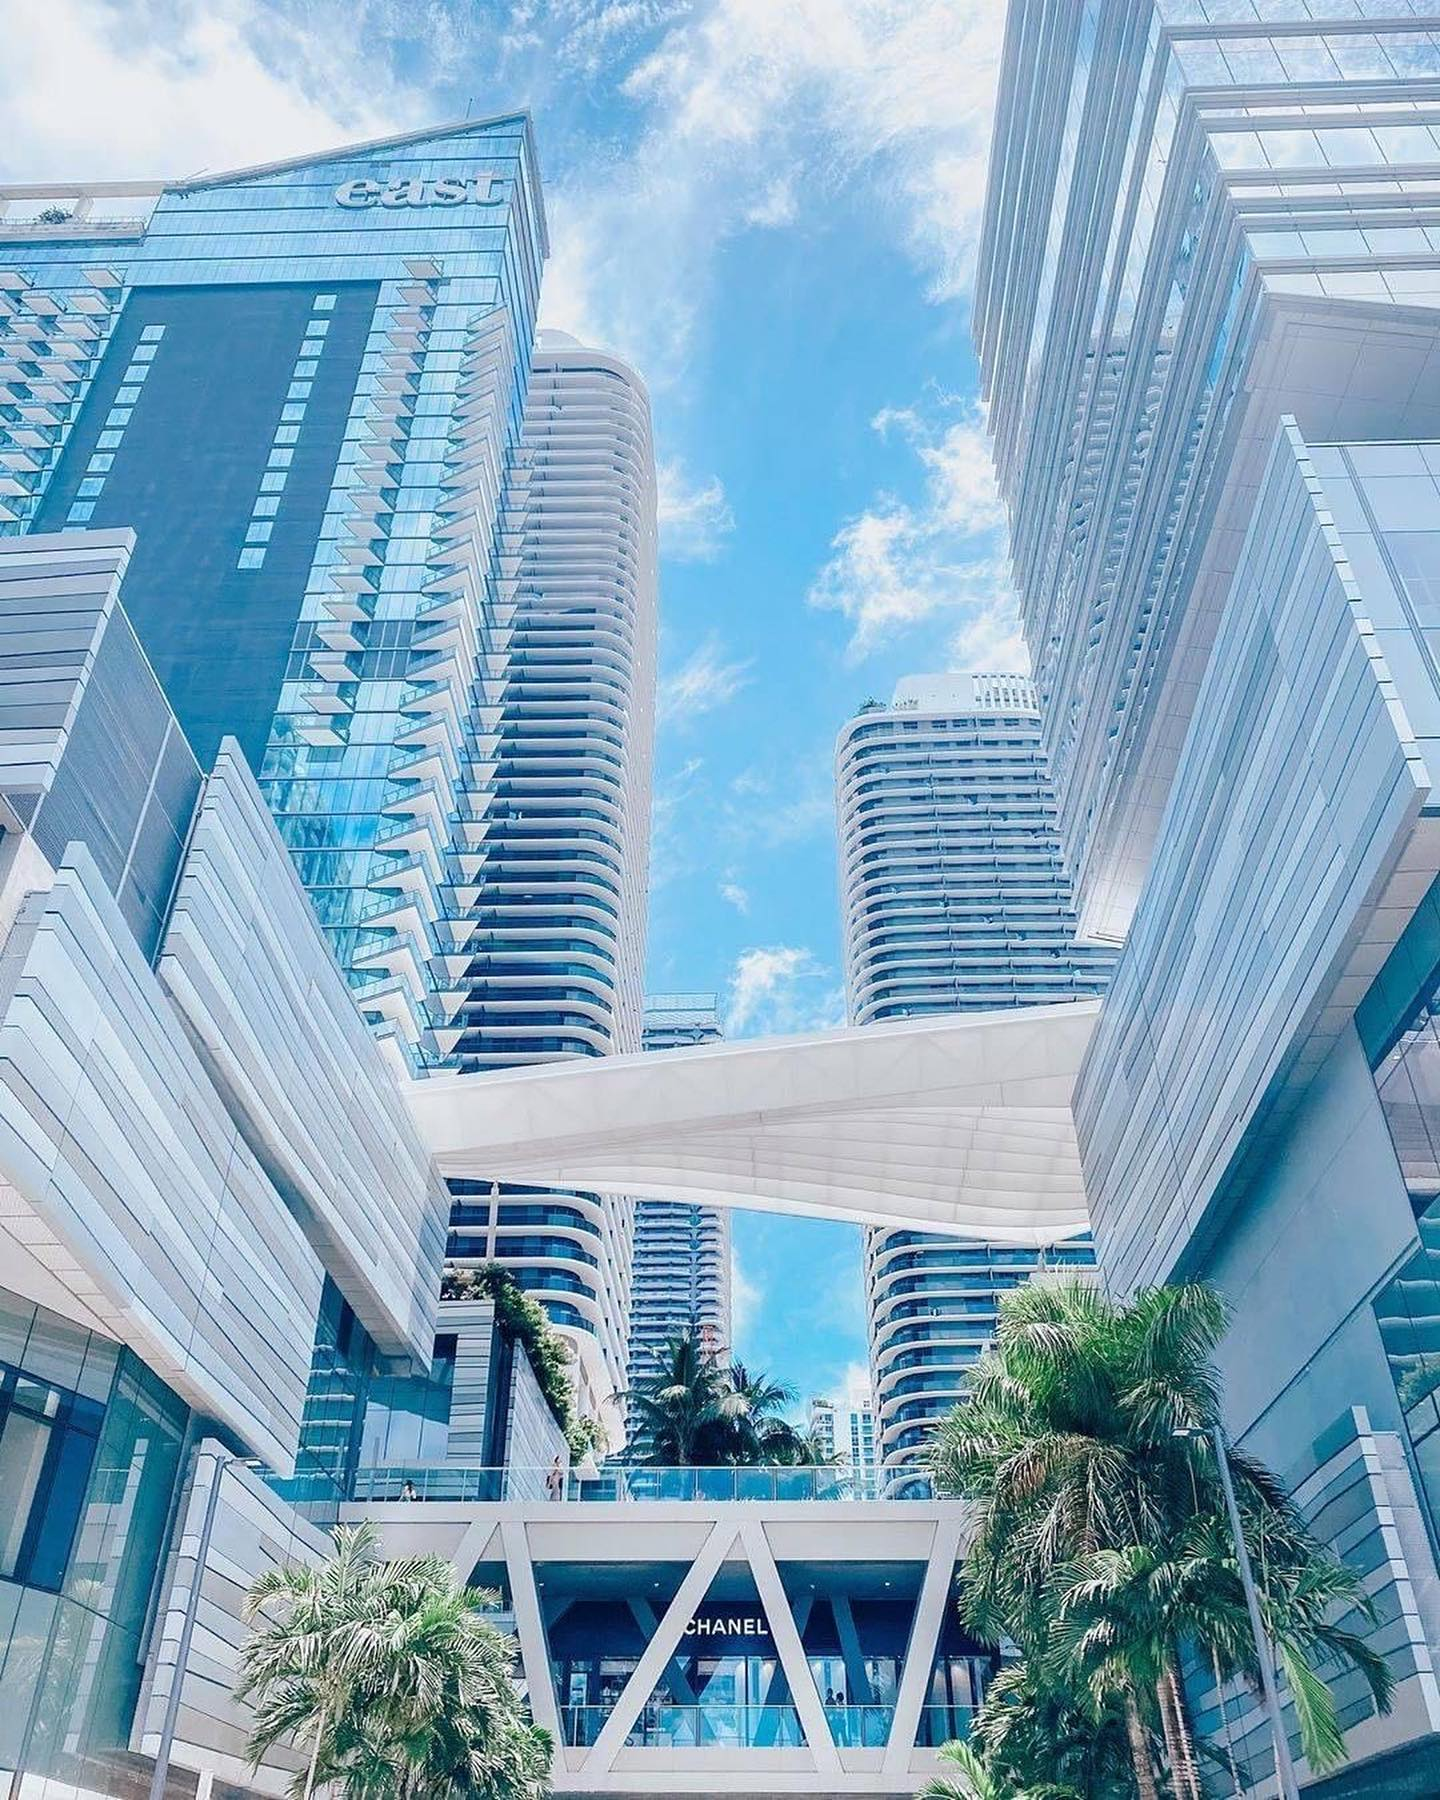 Shop til you drop! Whether you're shopping lux brands, craving ice cream or need some fresh air, there's something for everyone during @brickellcitycentre's tax free weekend, all within steps from the #EASTMiami hotel. . . . #atEAST #EASTMiami #jetsetfam #travel #getaway #vacation #ilovetravel #jetsetter #miamifoodie #holiday #miamihotels #travelpics #passportready #miamilife #instavacation #wanderlust #luxury #letswander #brickellmiami #globetrotter #luxuryworldtraveler #beautifuldestinations #miamihotels #letsgosomewhere #brickelllife #miami #brickell #lifeofadventure #brickellliving